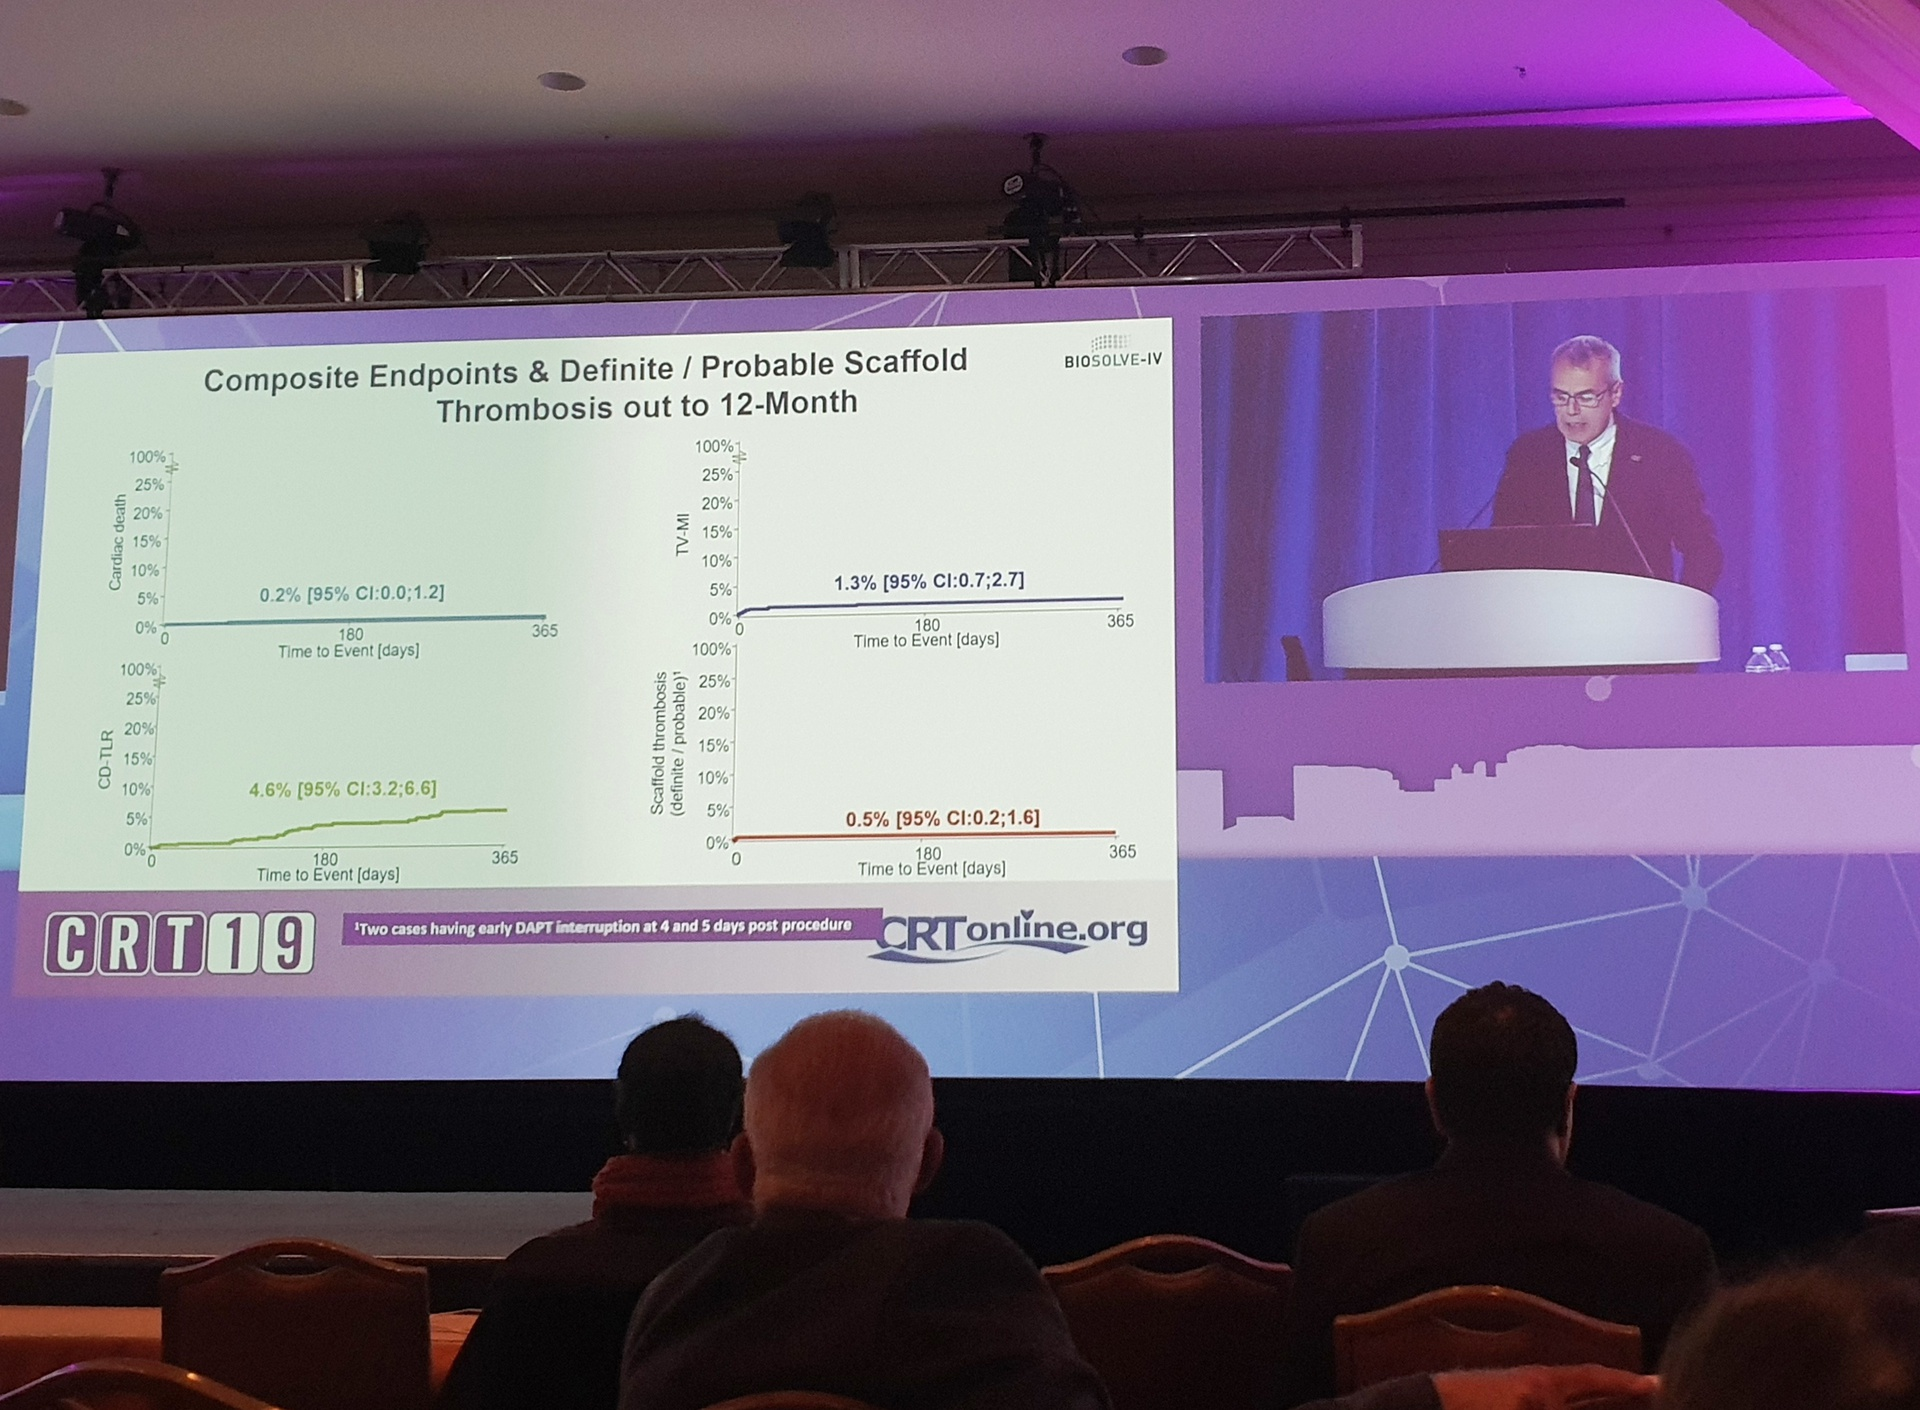 Dr. Stefano Galli at CRT Meeting 2019